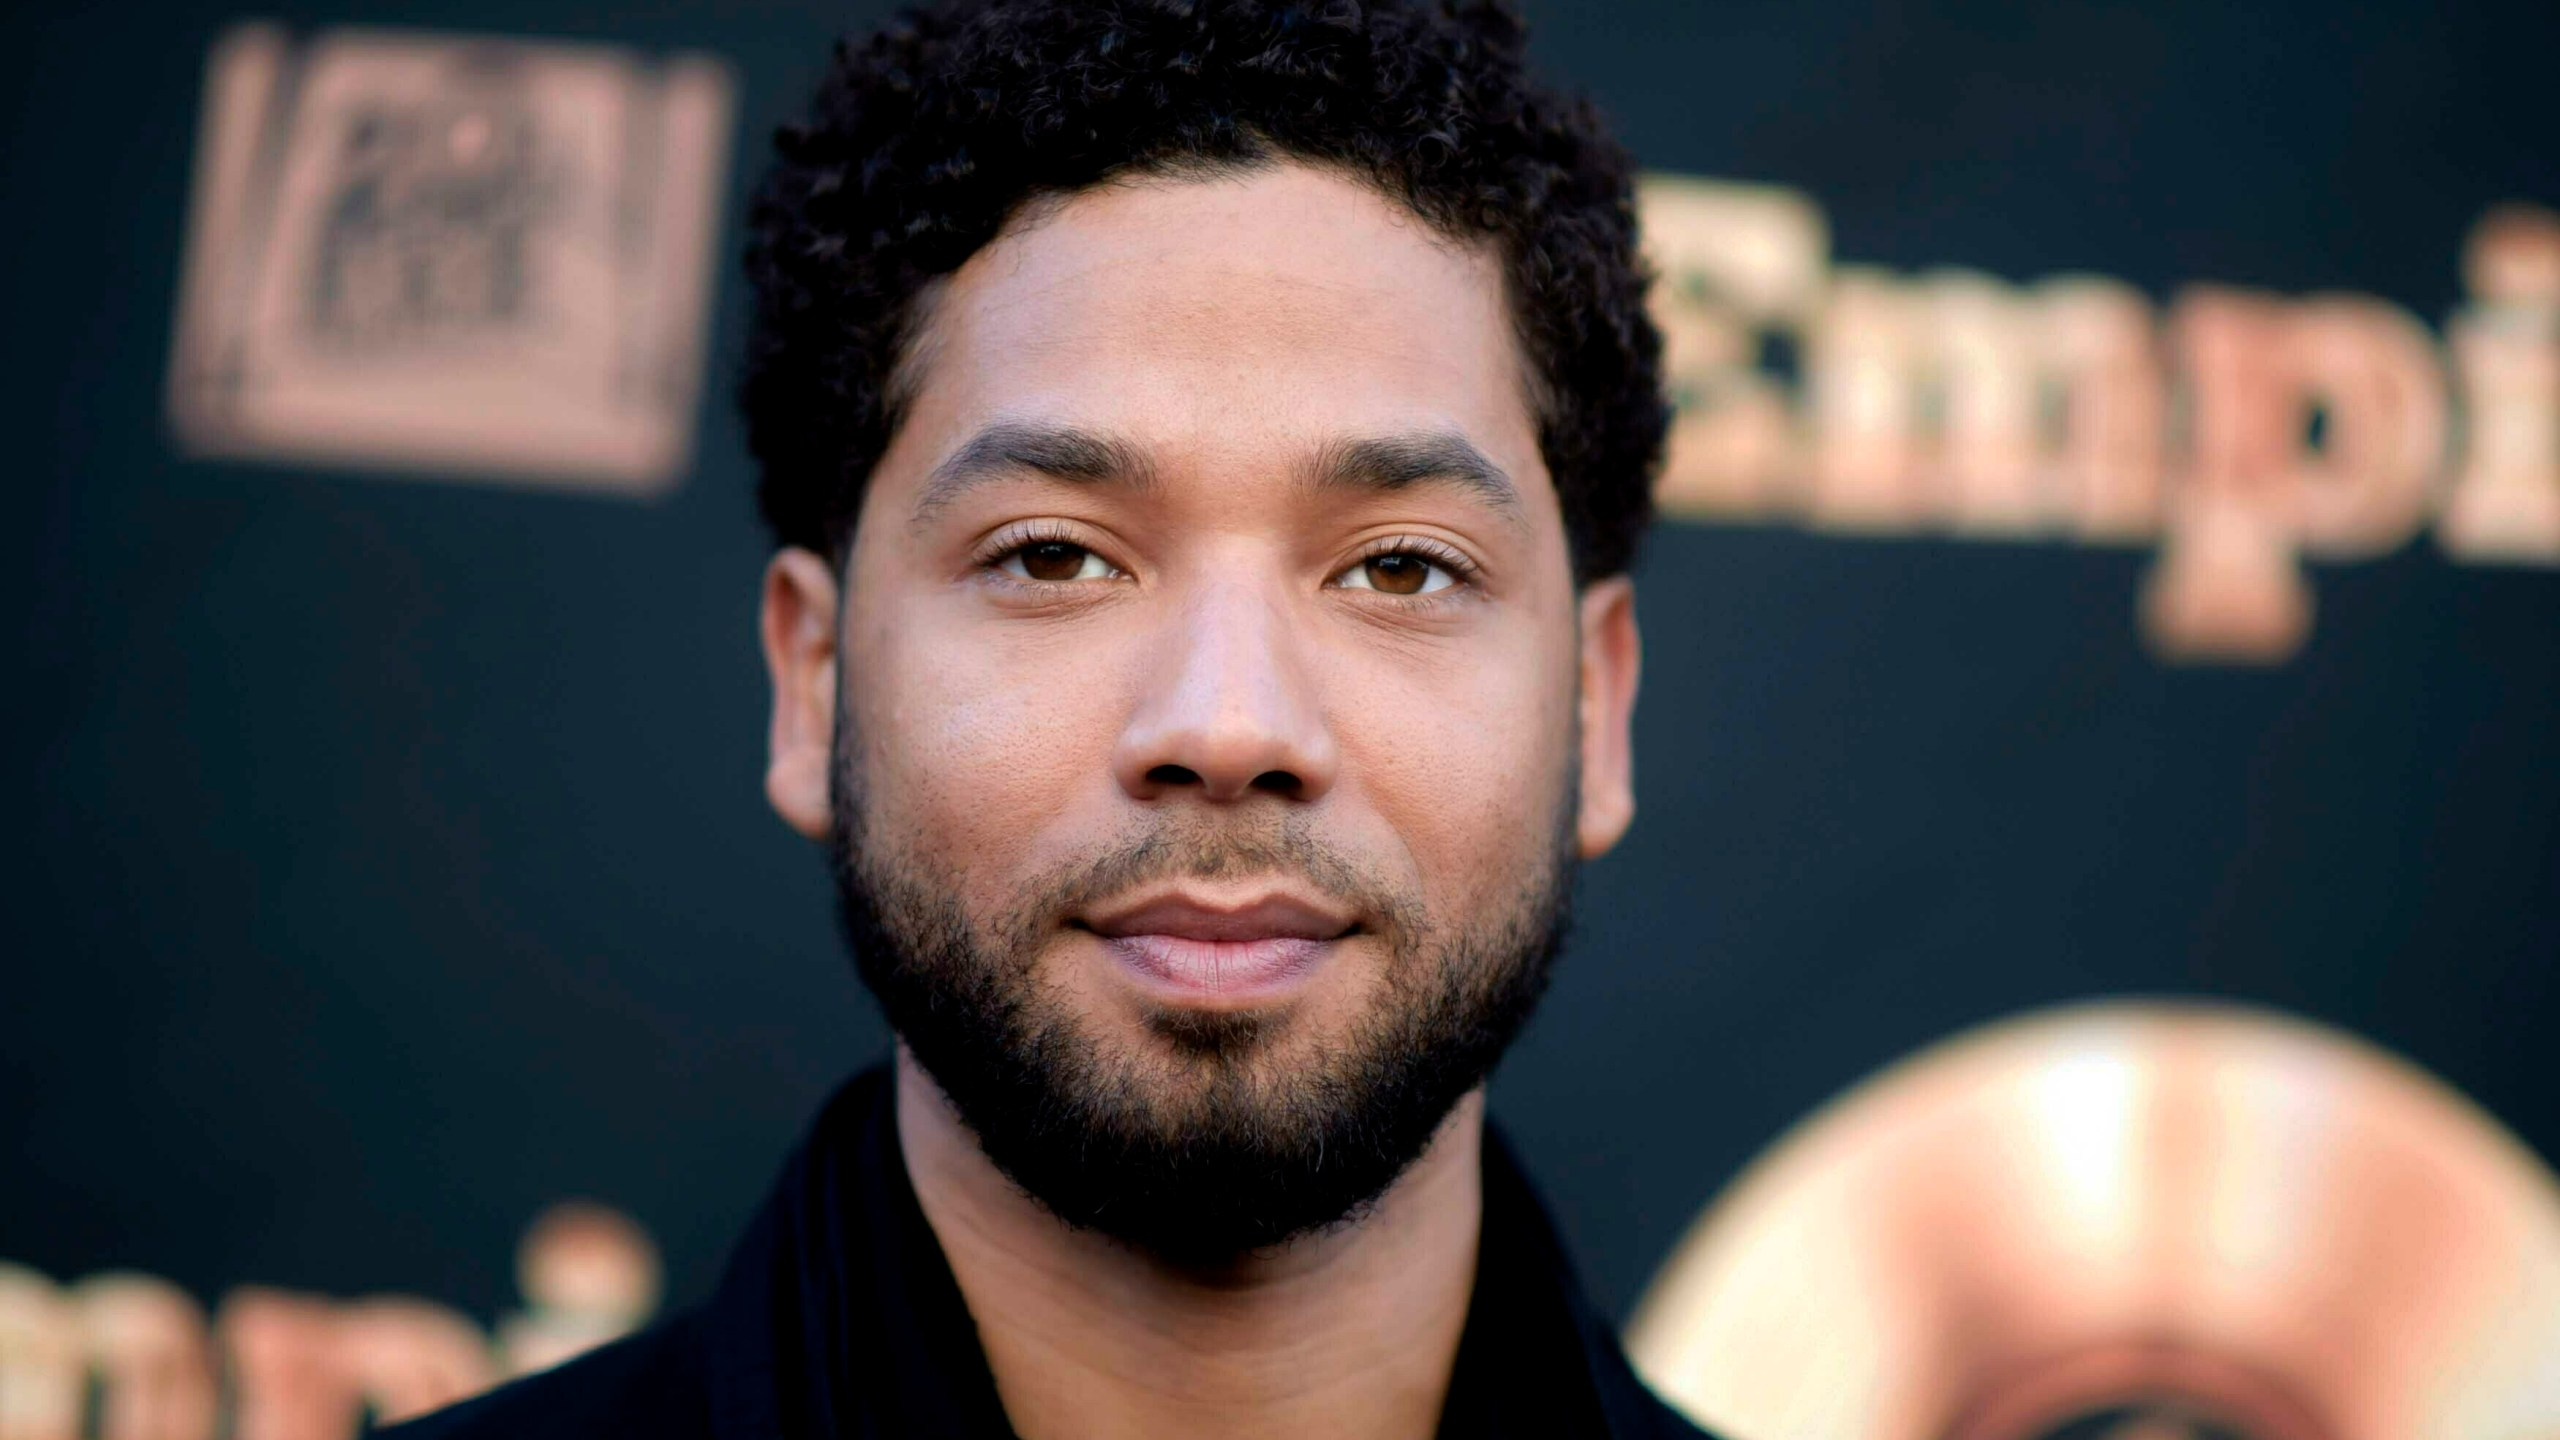 NBC: Smollett attack investigation shifted, police want to